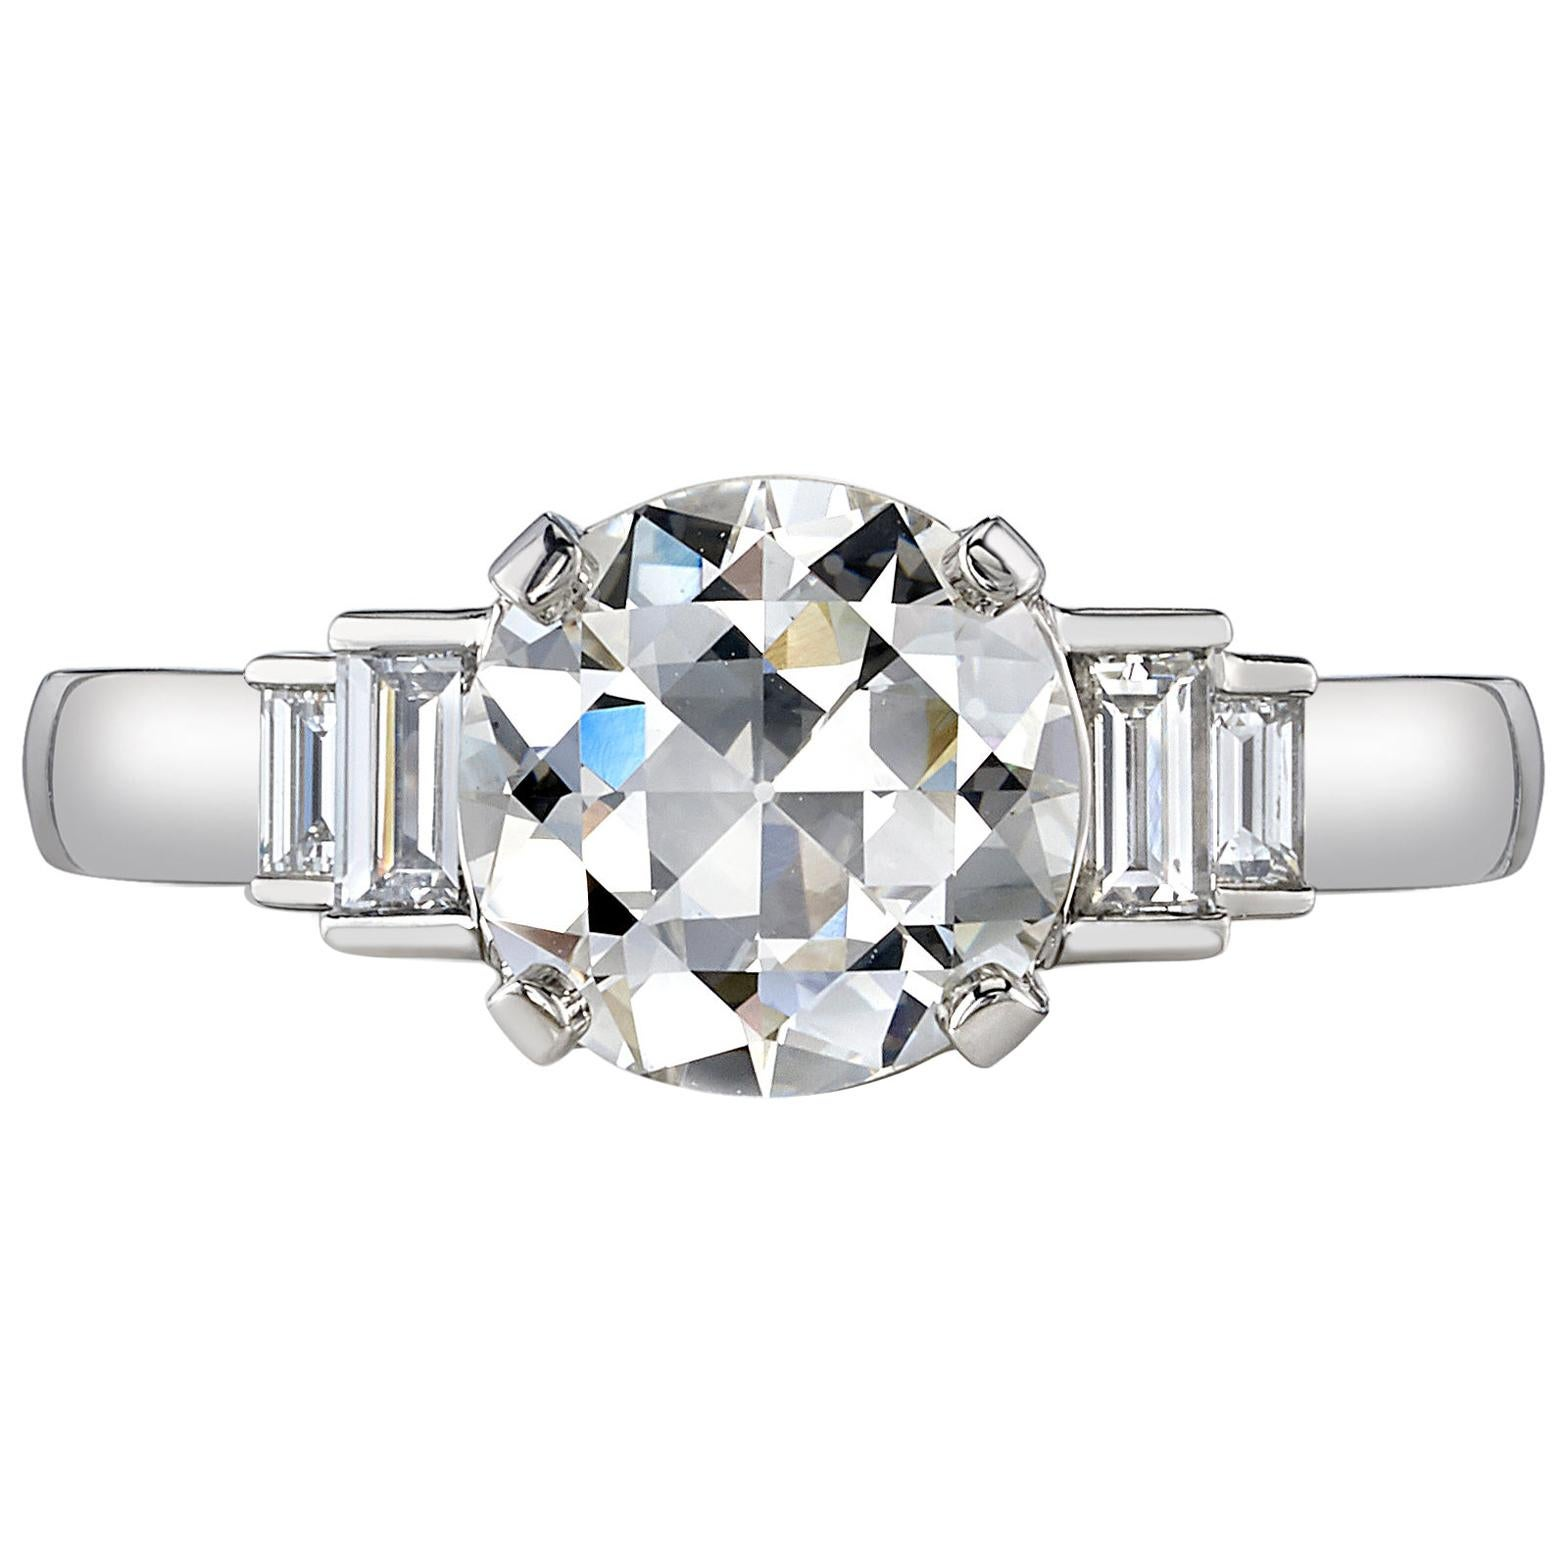 2.03 Carat Old European Cut Diamond Set in a Handcrafted Platinum Ring